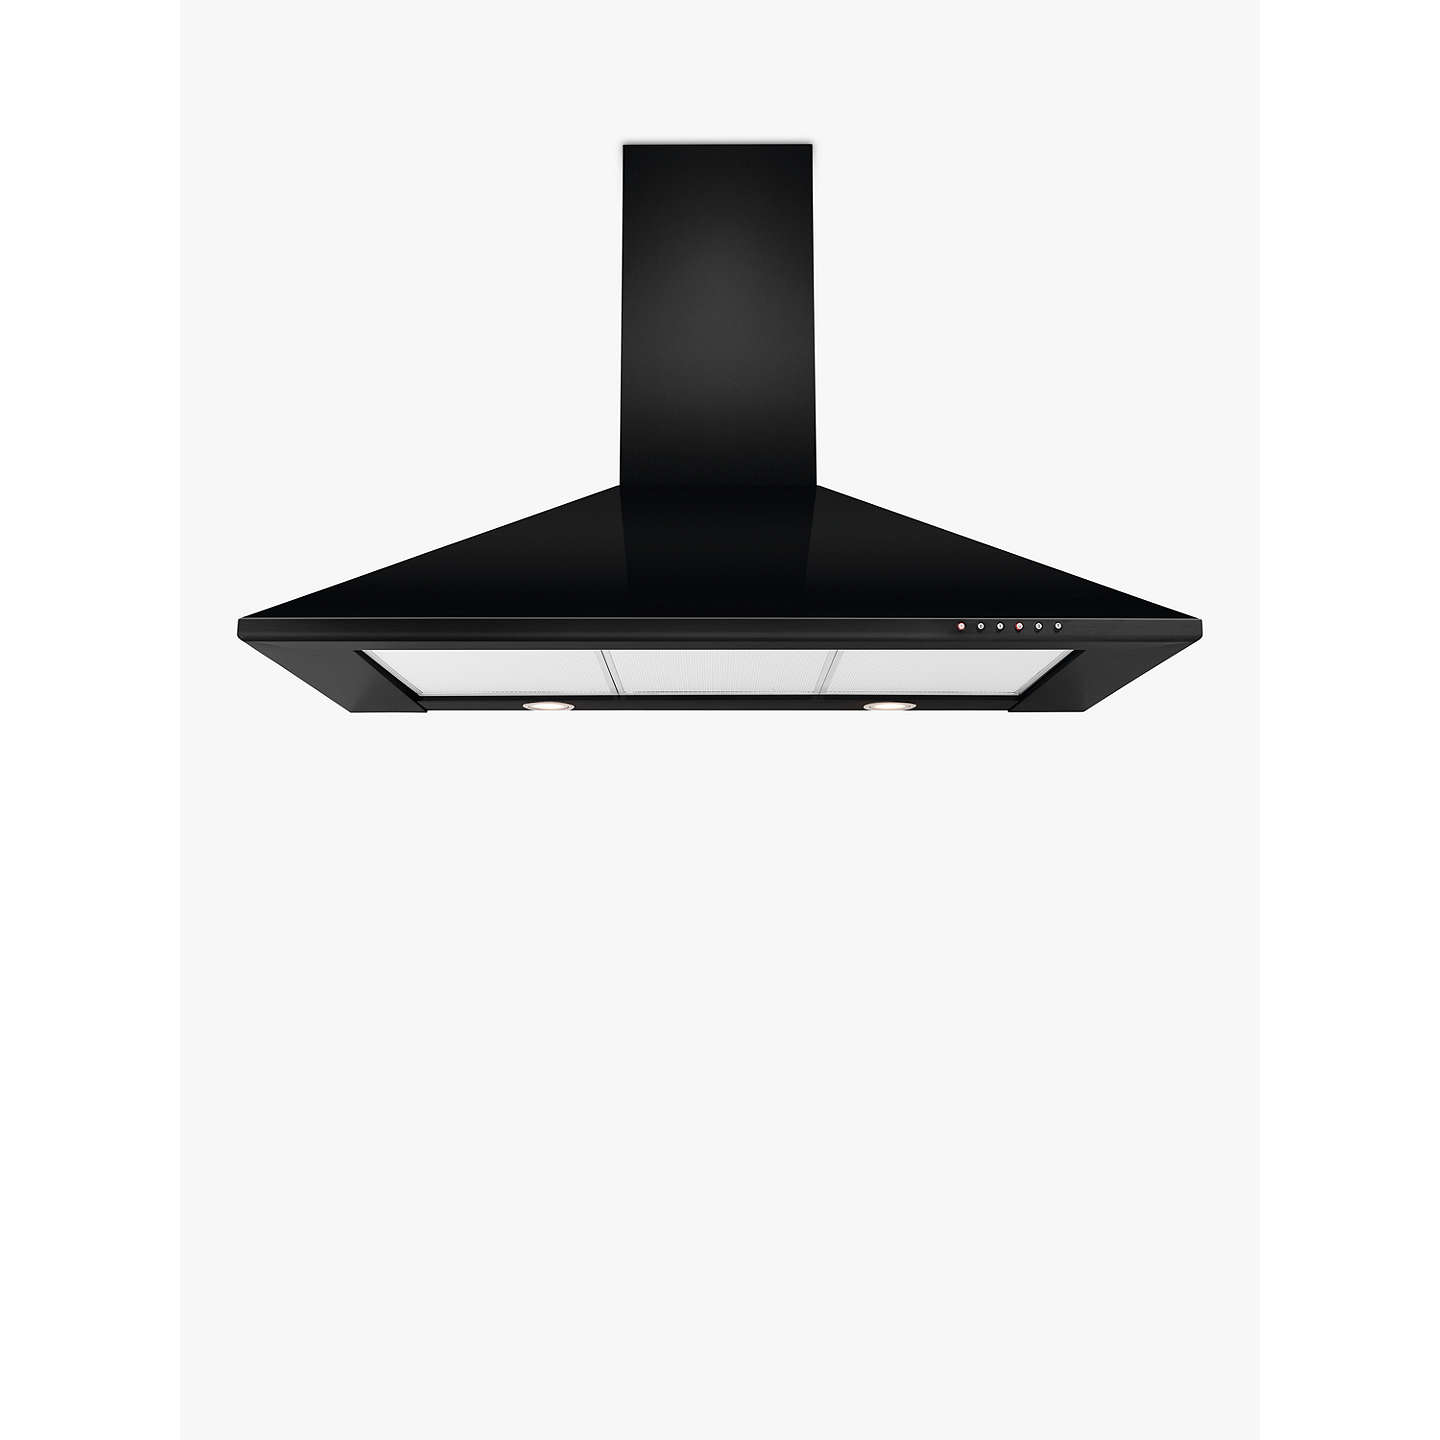 Most Powerful Range Hood ~ Powerful kitchen extractor hood quiet and